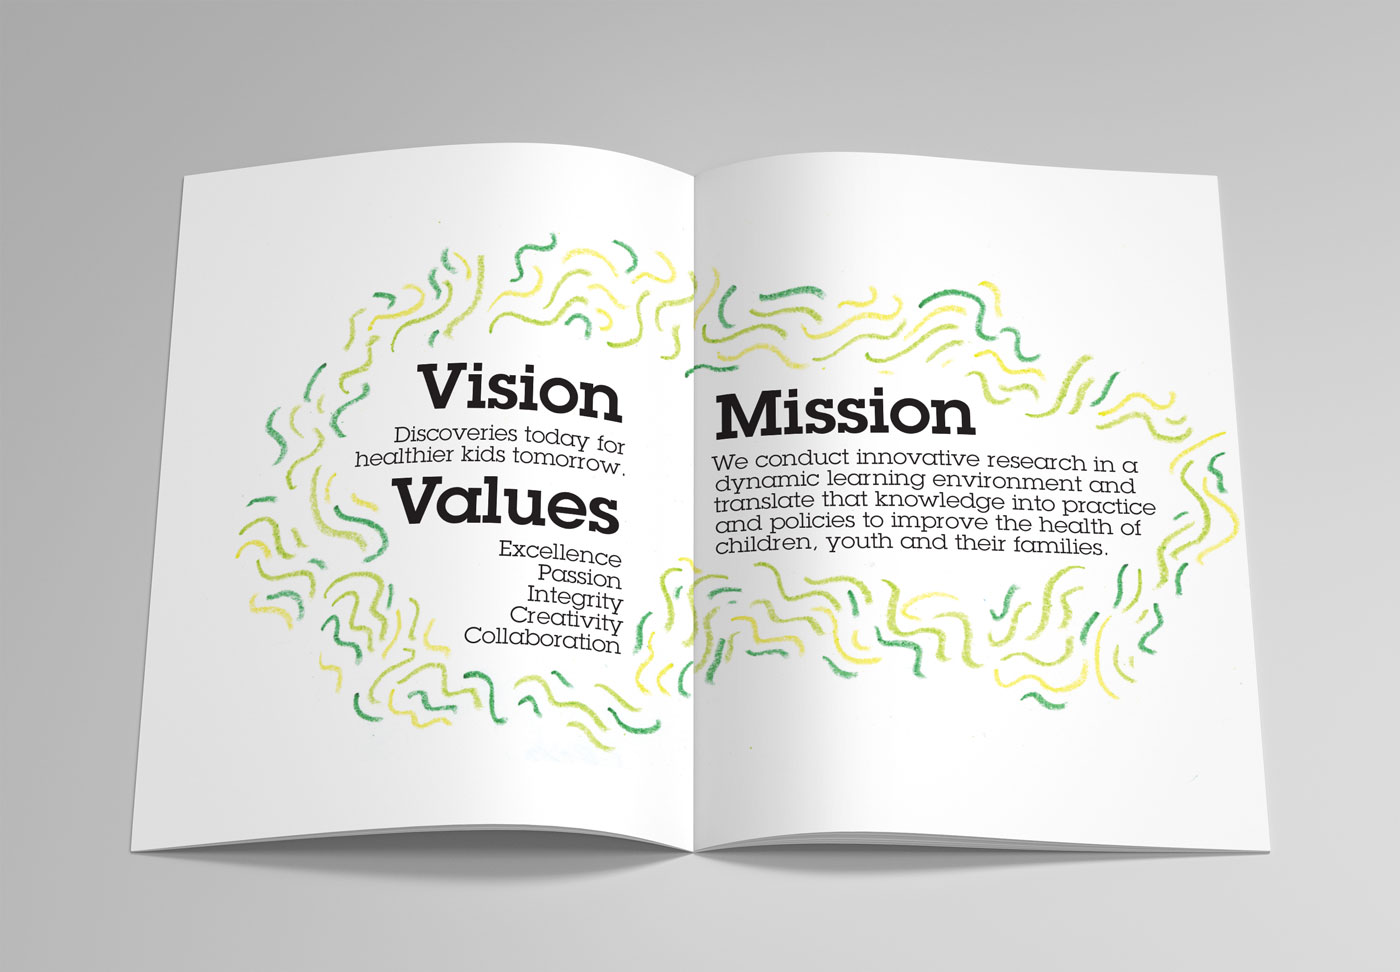 Vision, Values, and Mission section spread